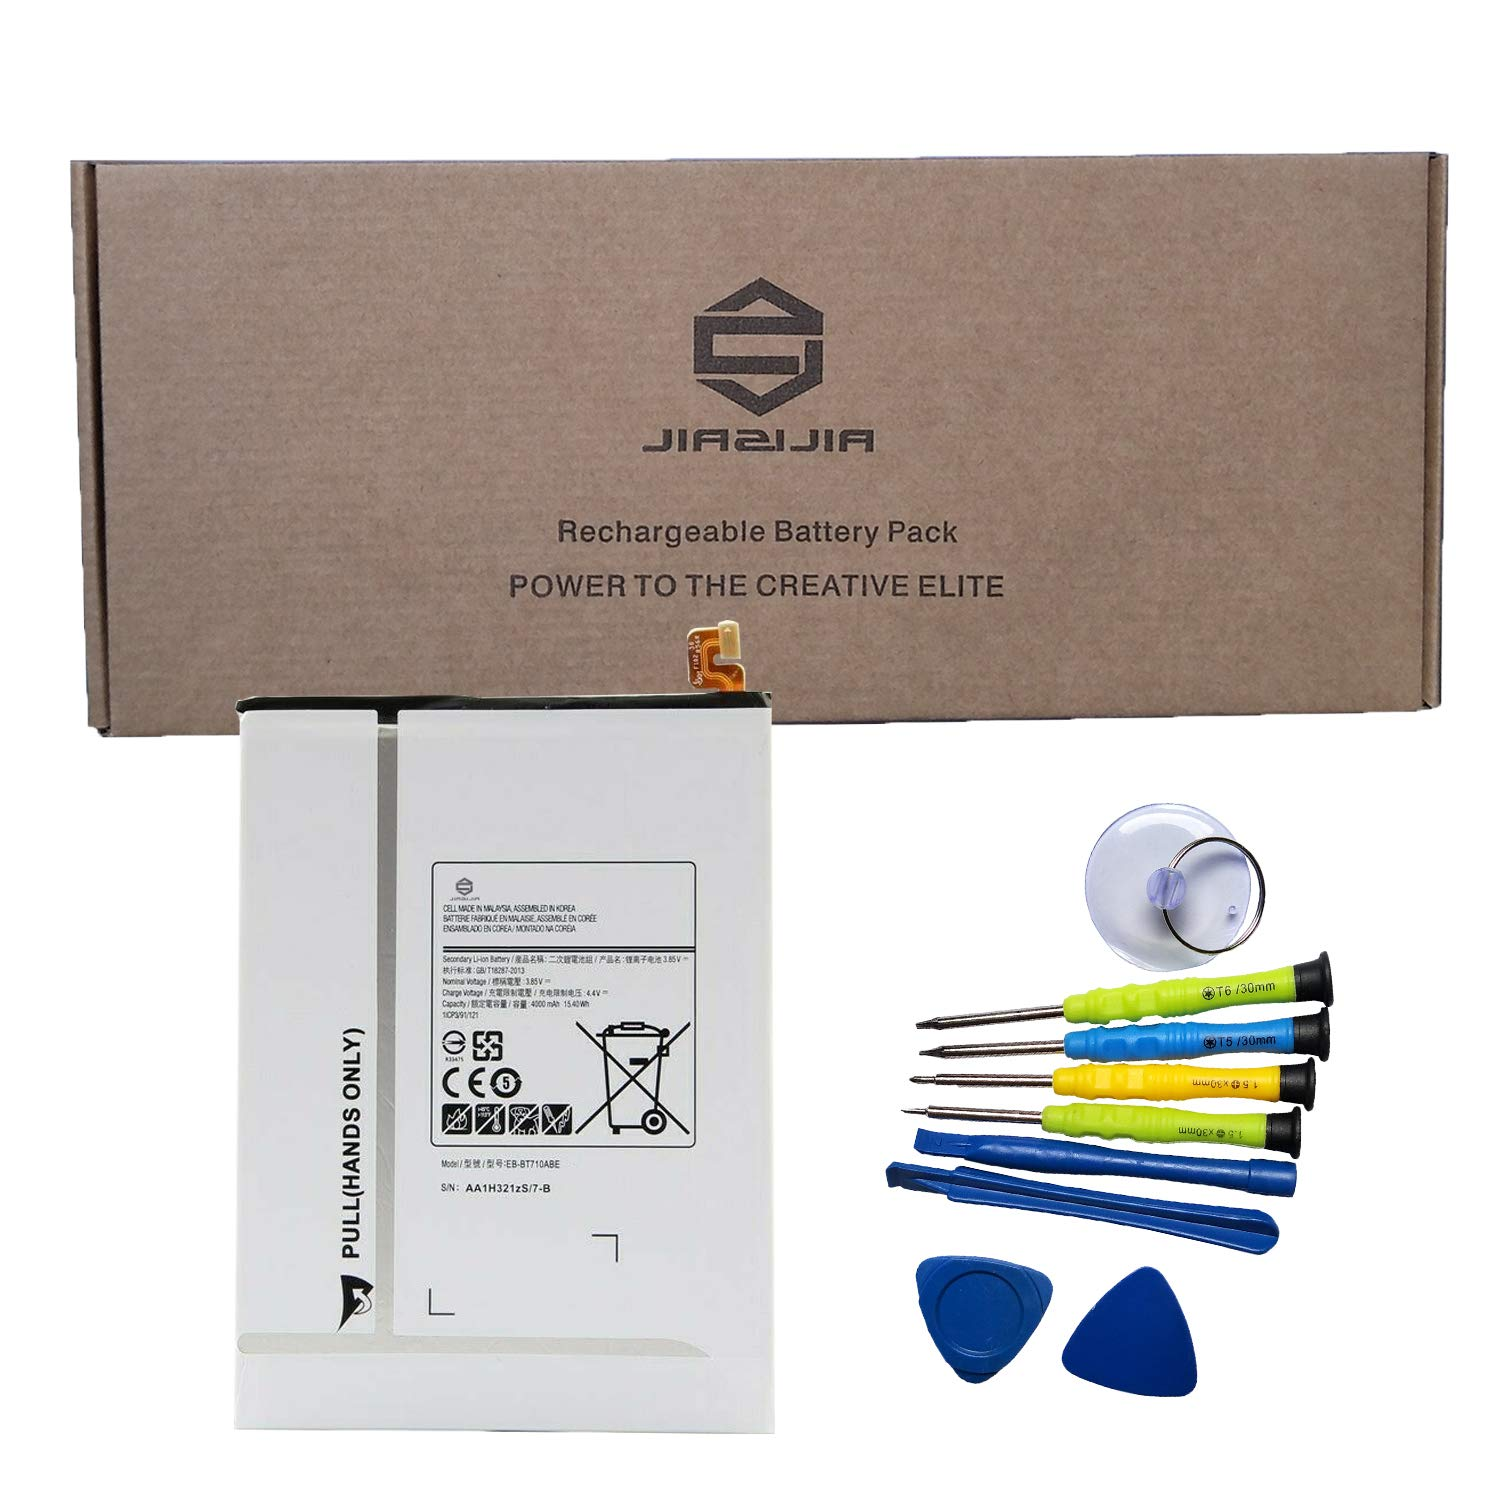 JIAZIJIA EB-BT710ABE Tablet Battery Replacement for Samsung Galaxy Tab S2 8.0 SM-T710 SM-T713 SM-T715 SM-T715C SM-T715N0 SM-T715Y SM-T719 SM-T719C Series EB-BT710ABA Tools 3.85V 15.4Wh 4000mAh by JIAZIJIA